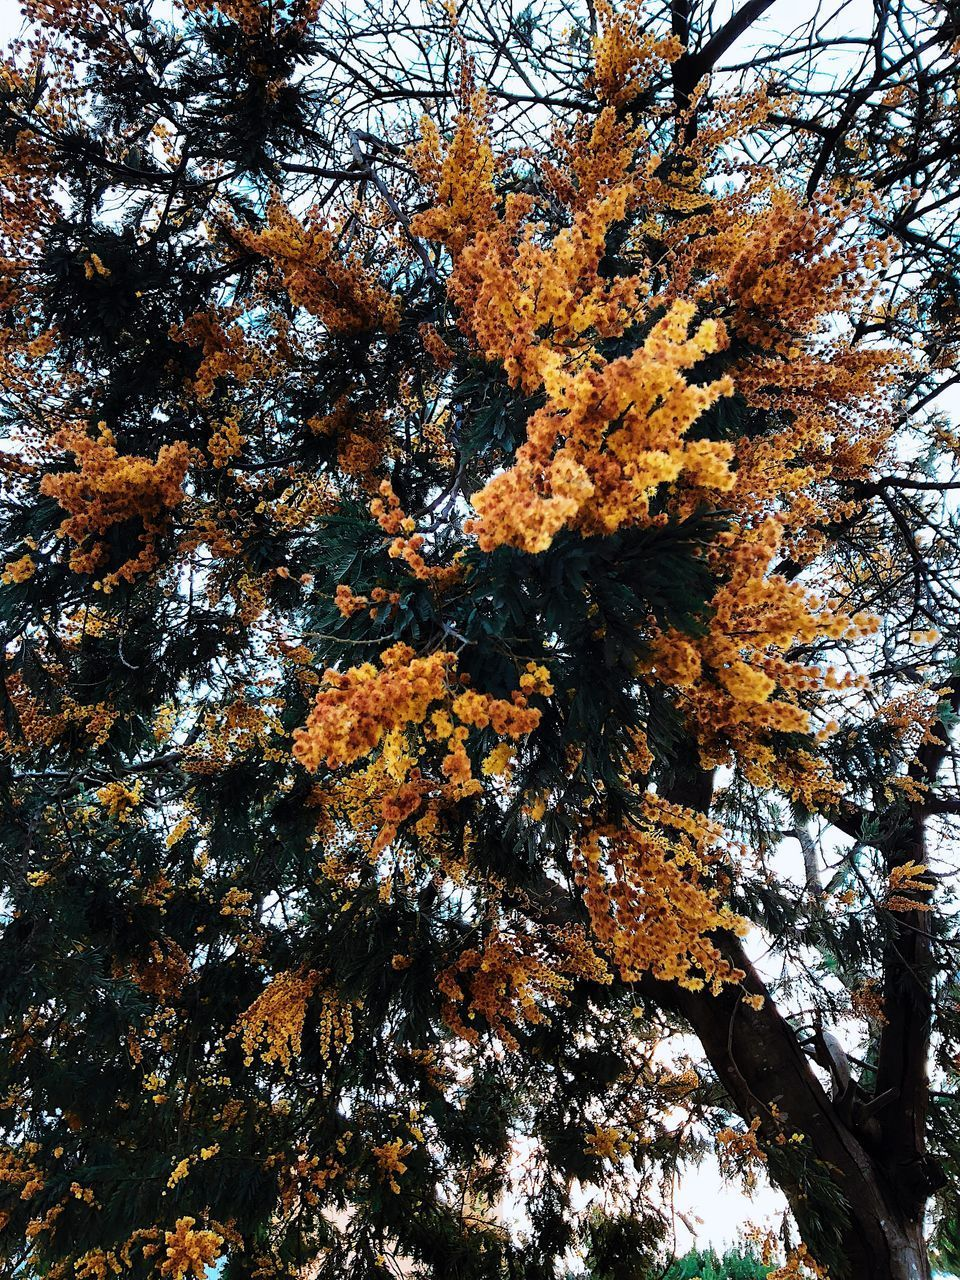 tree, plant, autumn, growth, change, low angle view, beauty in nature, branch, no people, nature, tranquility, day, outdoors, orange color, sky, trunk, tree trunk, leaf, plant part, forest, tree canopy, natural condition, directly below, coniferous tree